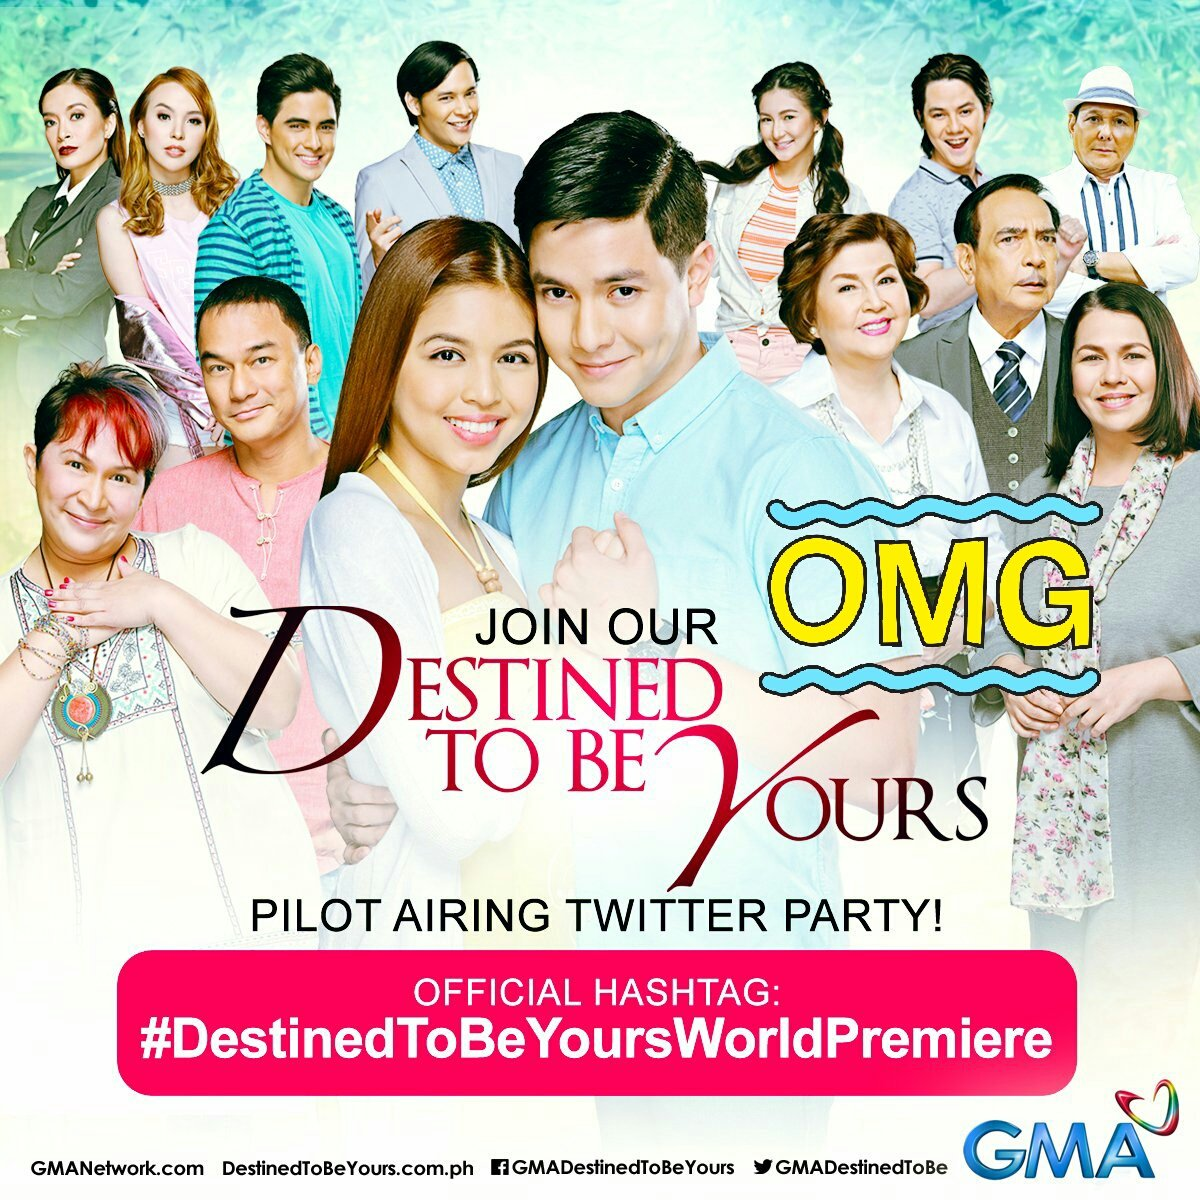 Let us see our destiny tonight at @GMADestinedToBe with Sinag &amp;Benjie.  #TeamAbroad  #DestinedToBeYoursWorldPremiere  #Almaine <br>http://pic.twitter.com/6MQMzUfbOk